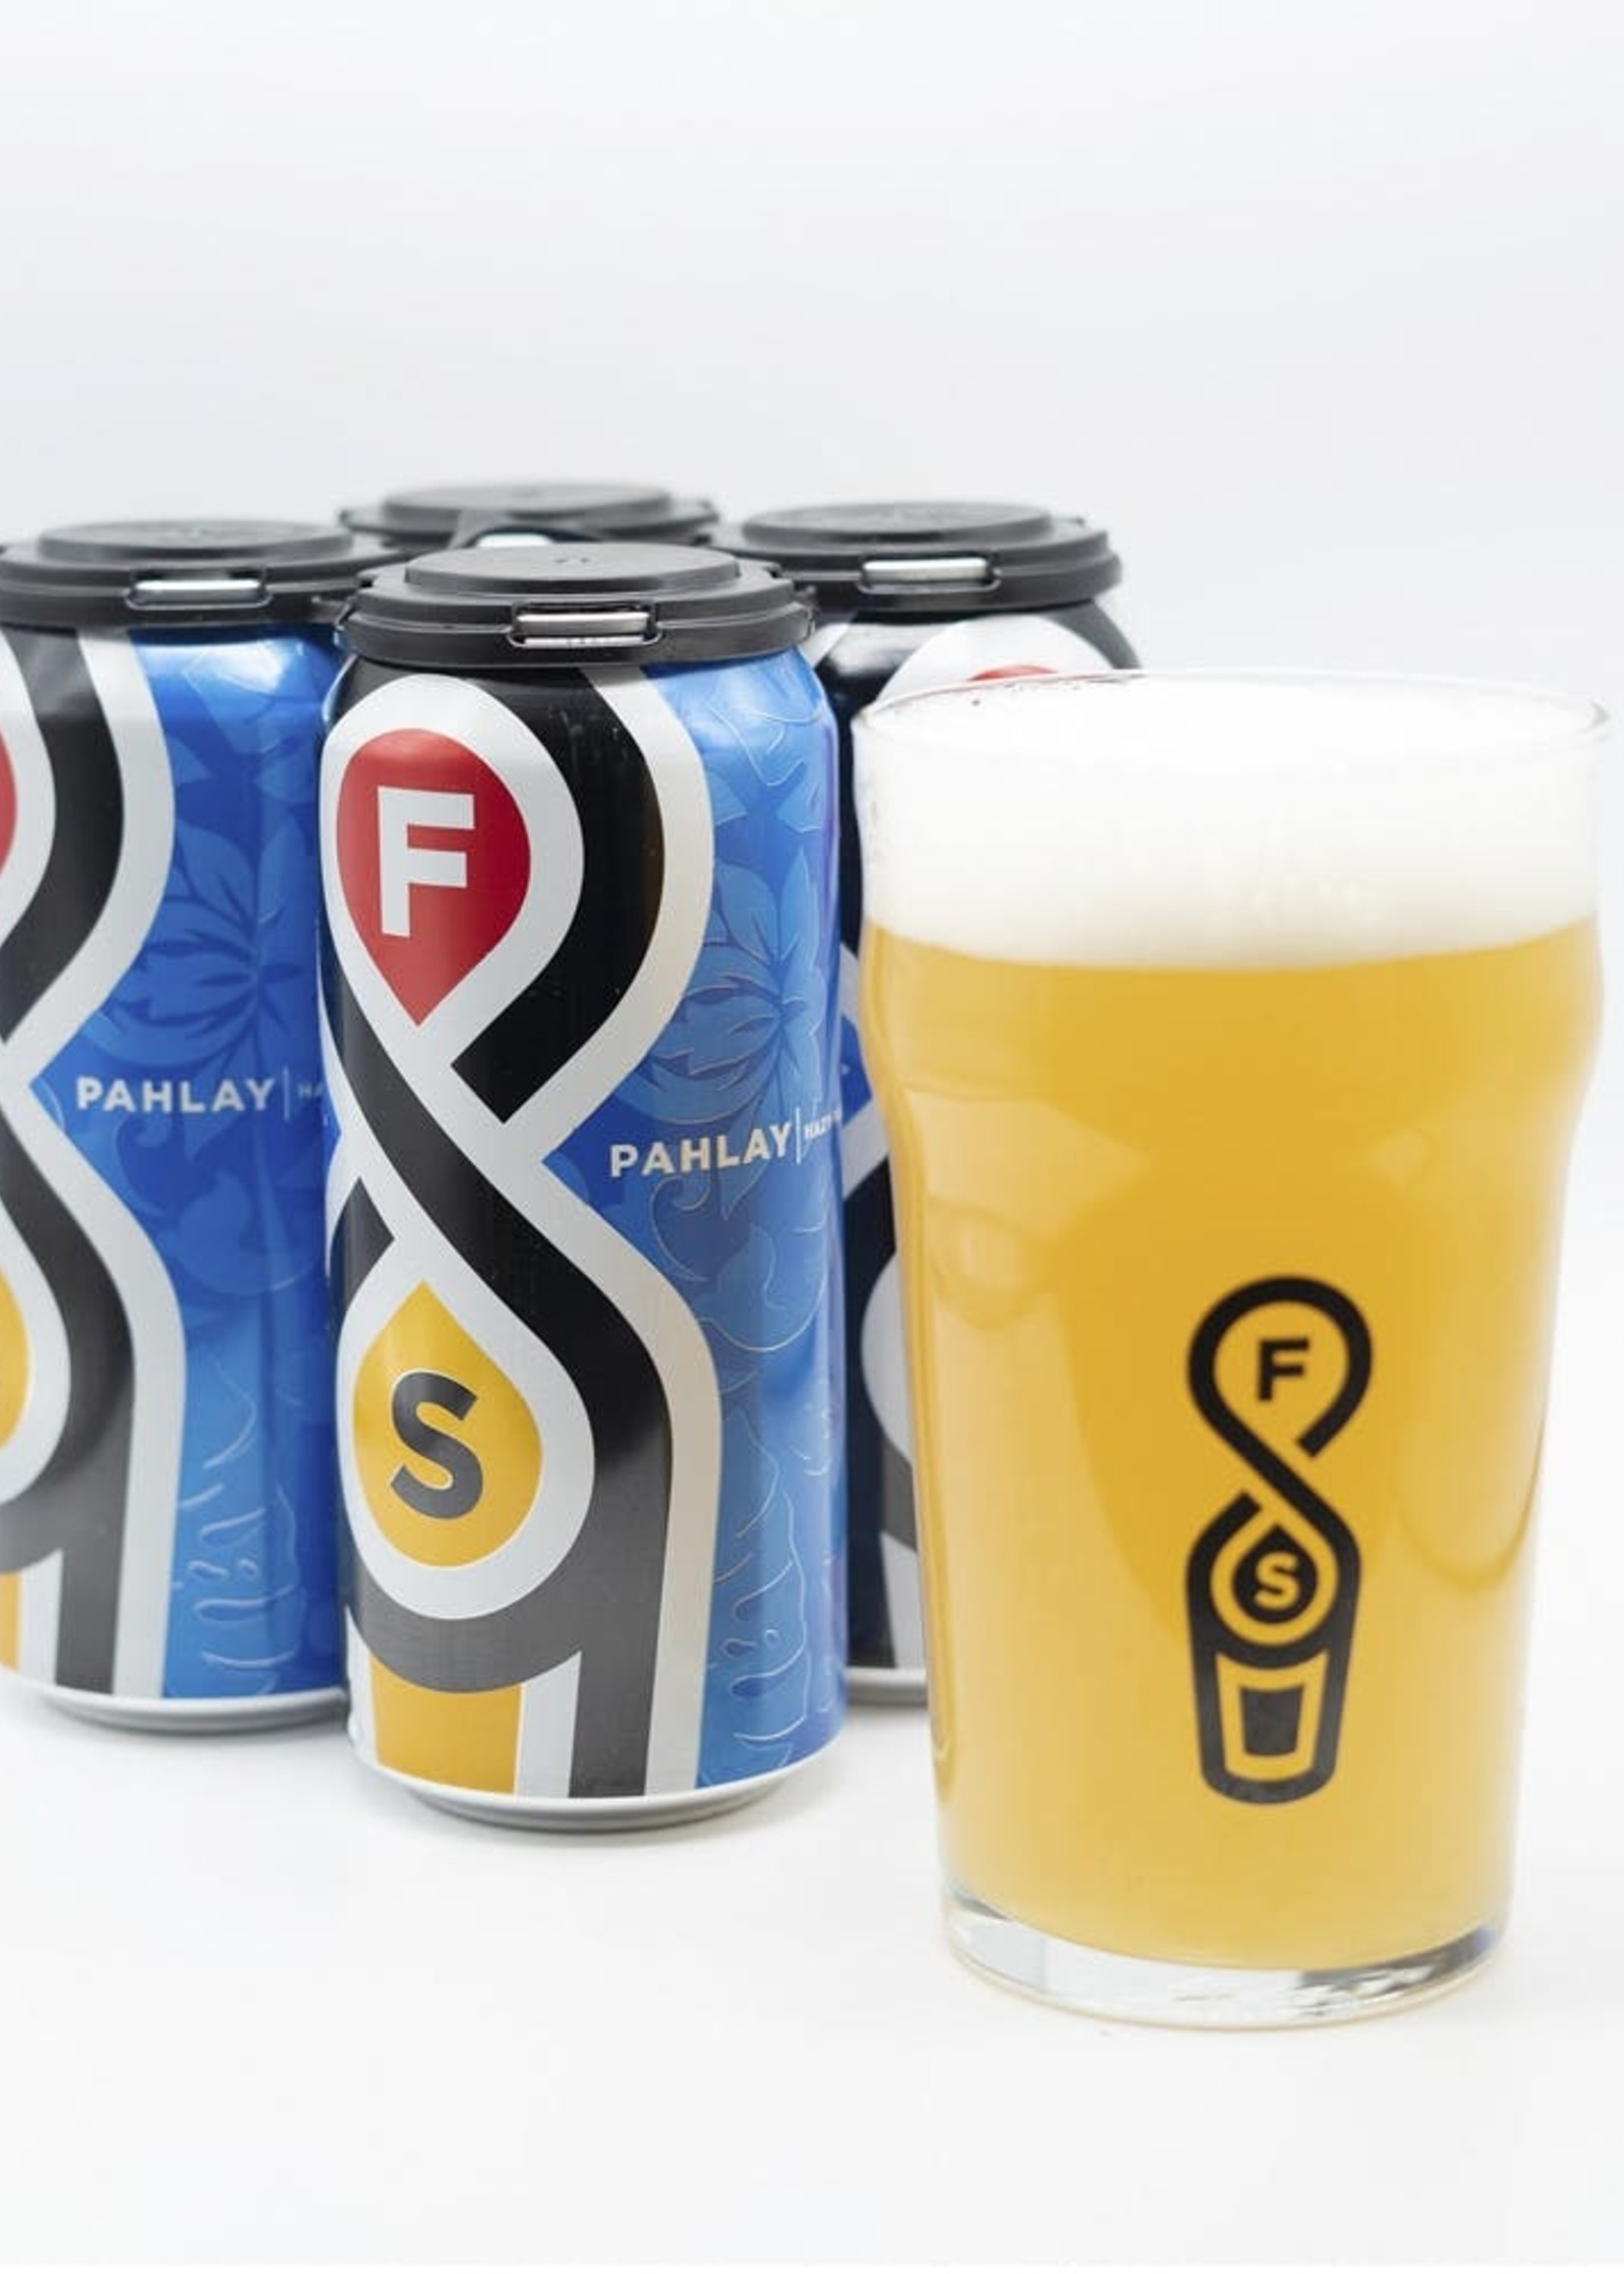 Fair State Pahlay Hazy Pale Ale 4 Cans